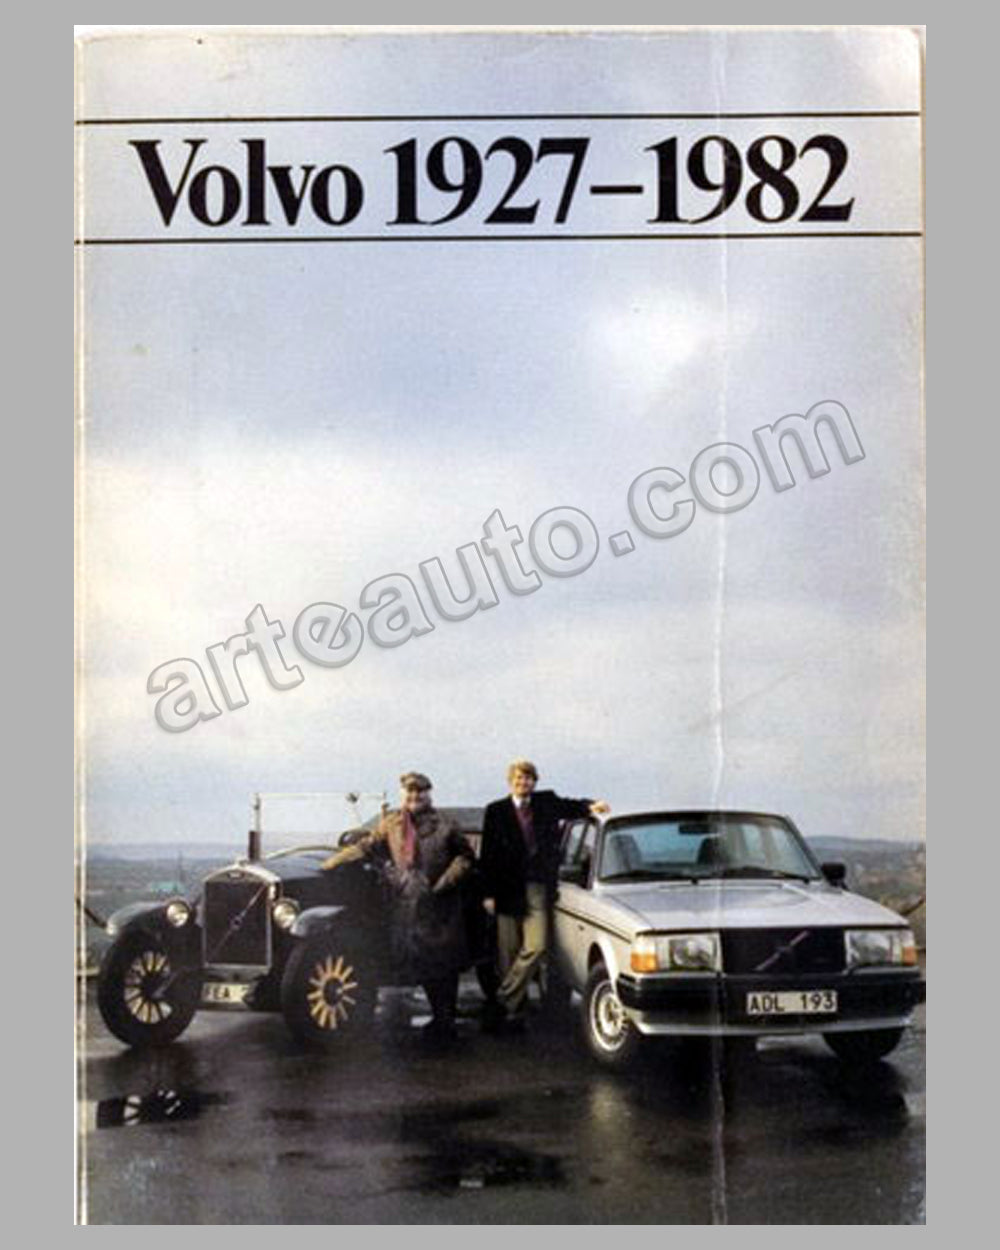 Volvo 1927-1982 book published by the company, 1982